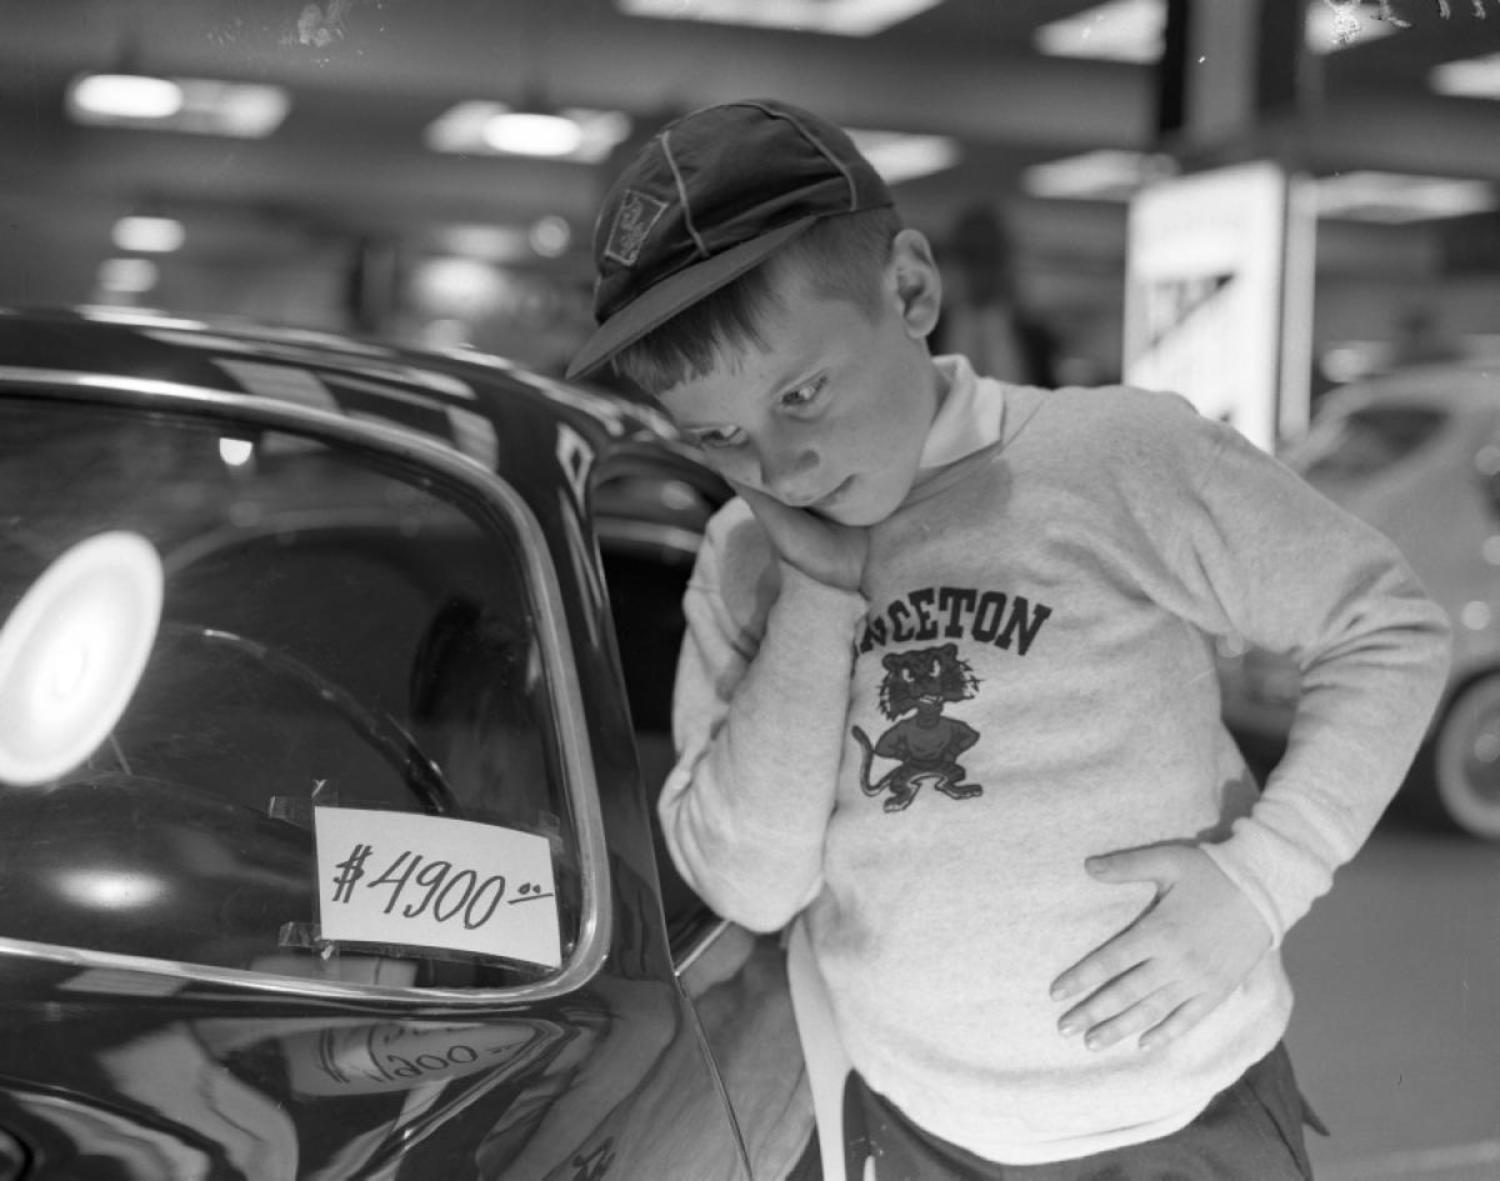 """Ralph Hubbard, 8, is thinking how nice it would be if pop could ante up $4,900 for Italian car [sic] being displayed at the Coliseum yesterday"" – read the Daily News' original caption. Ralph, we're hoping to finally got that dream car you wanted at the New York Auto Show."